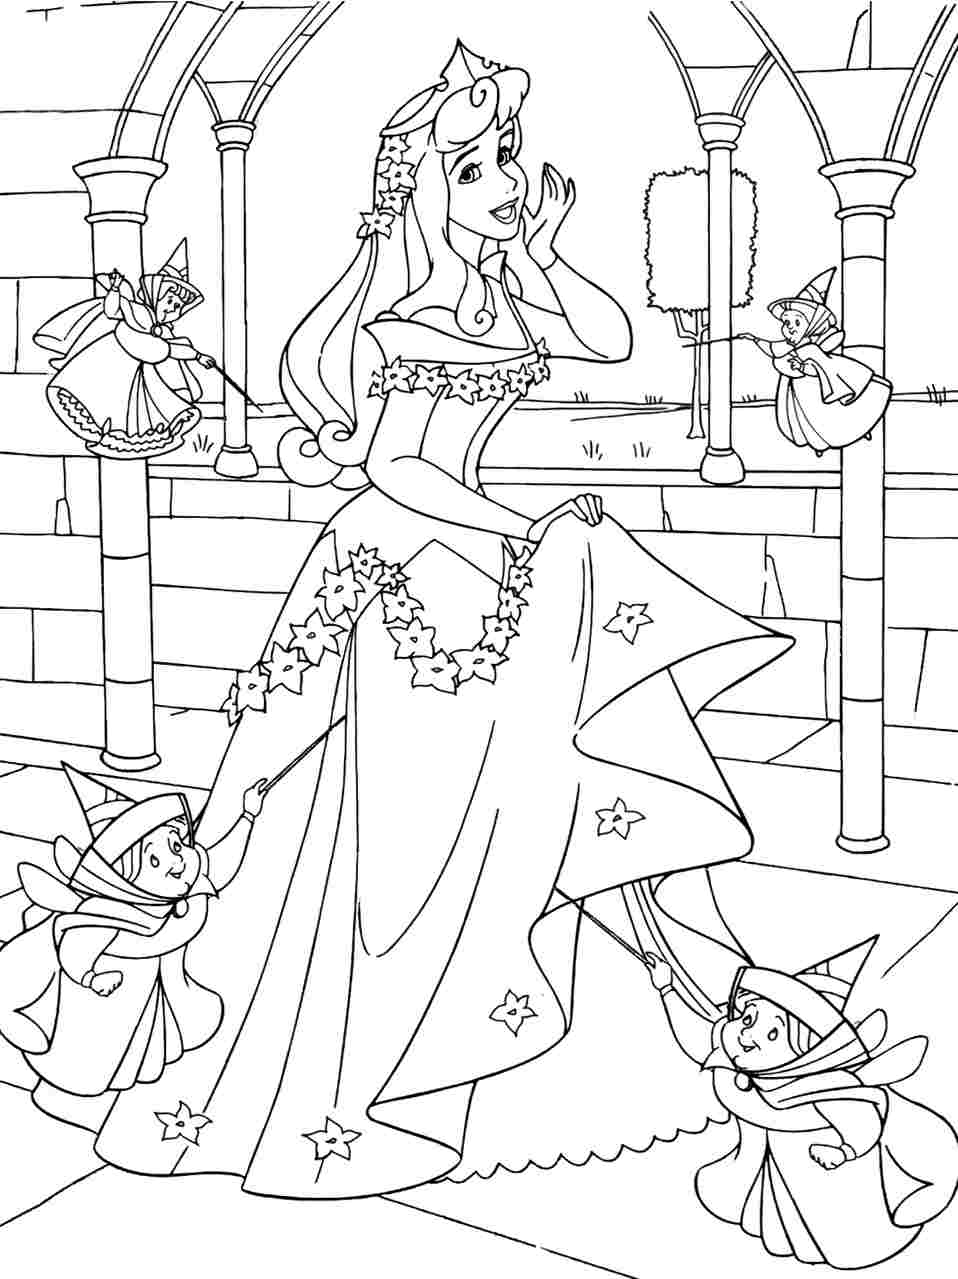 sleeping beauty coloring pages sleeping beauty coloring pages coloring beauty pages sleeping